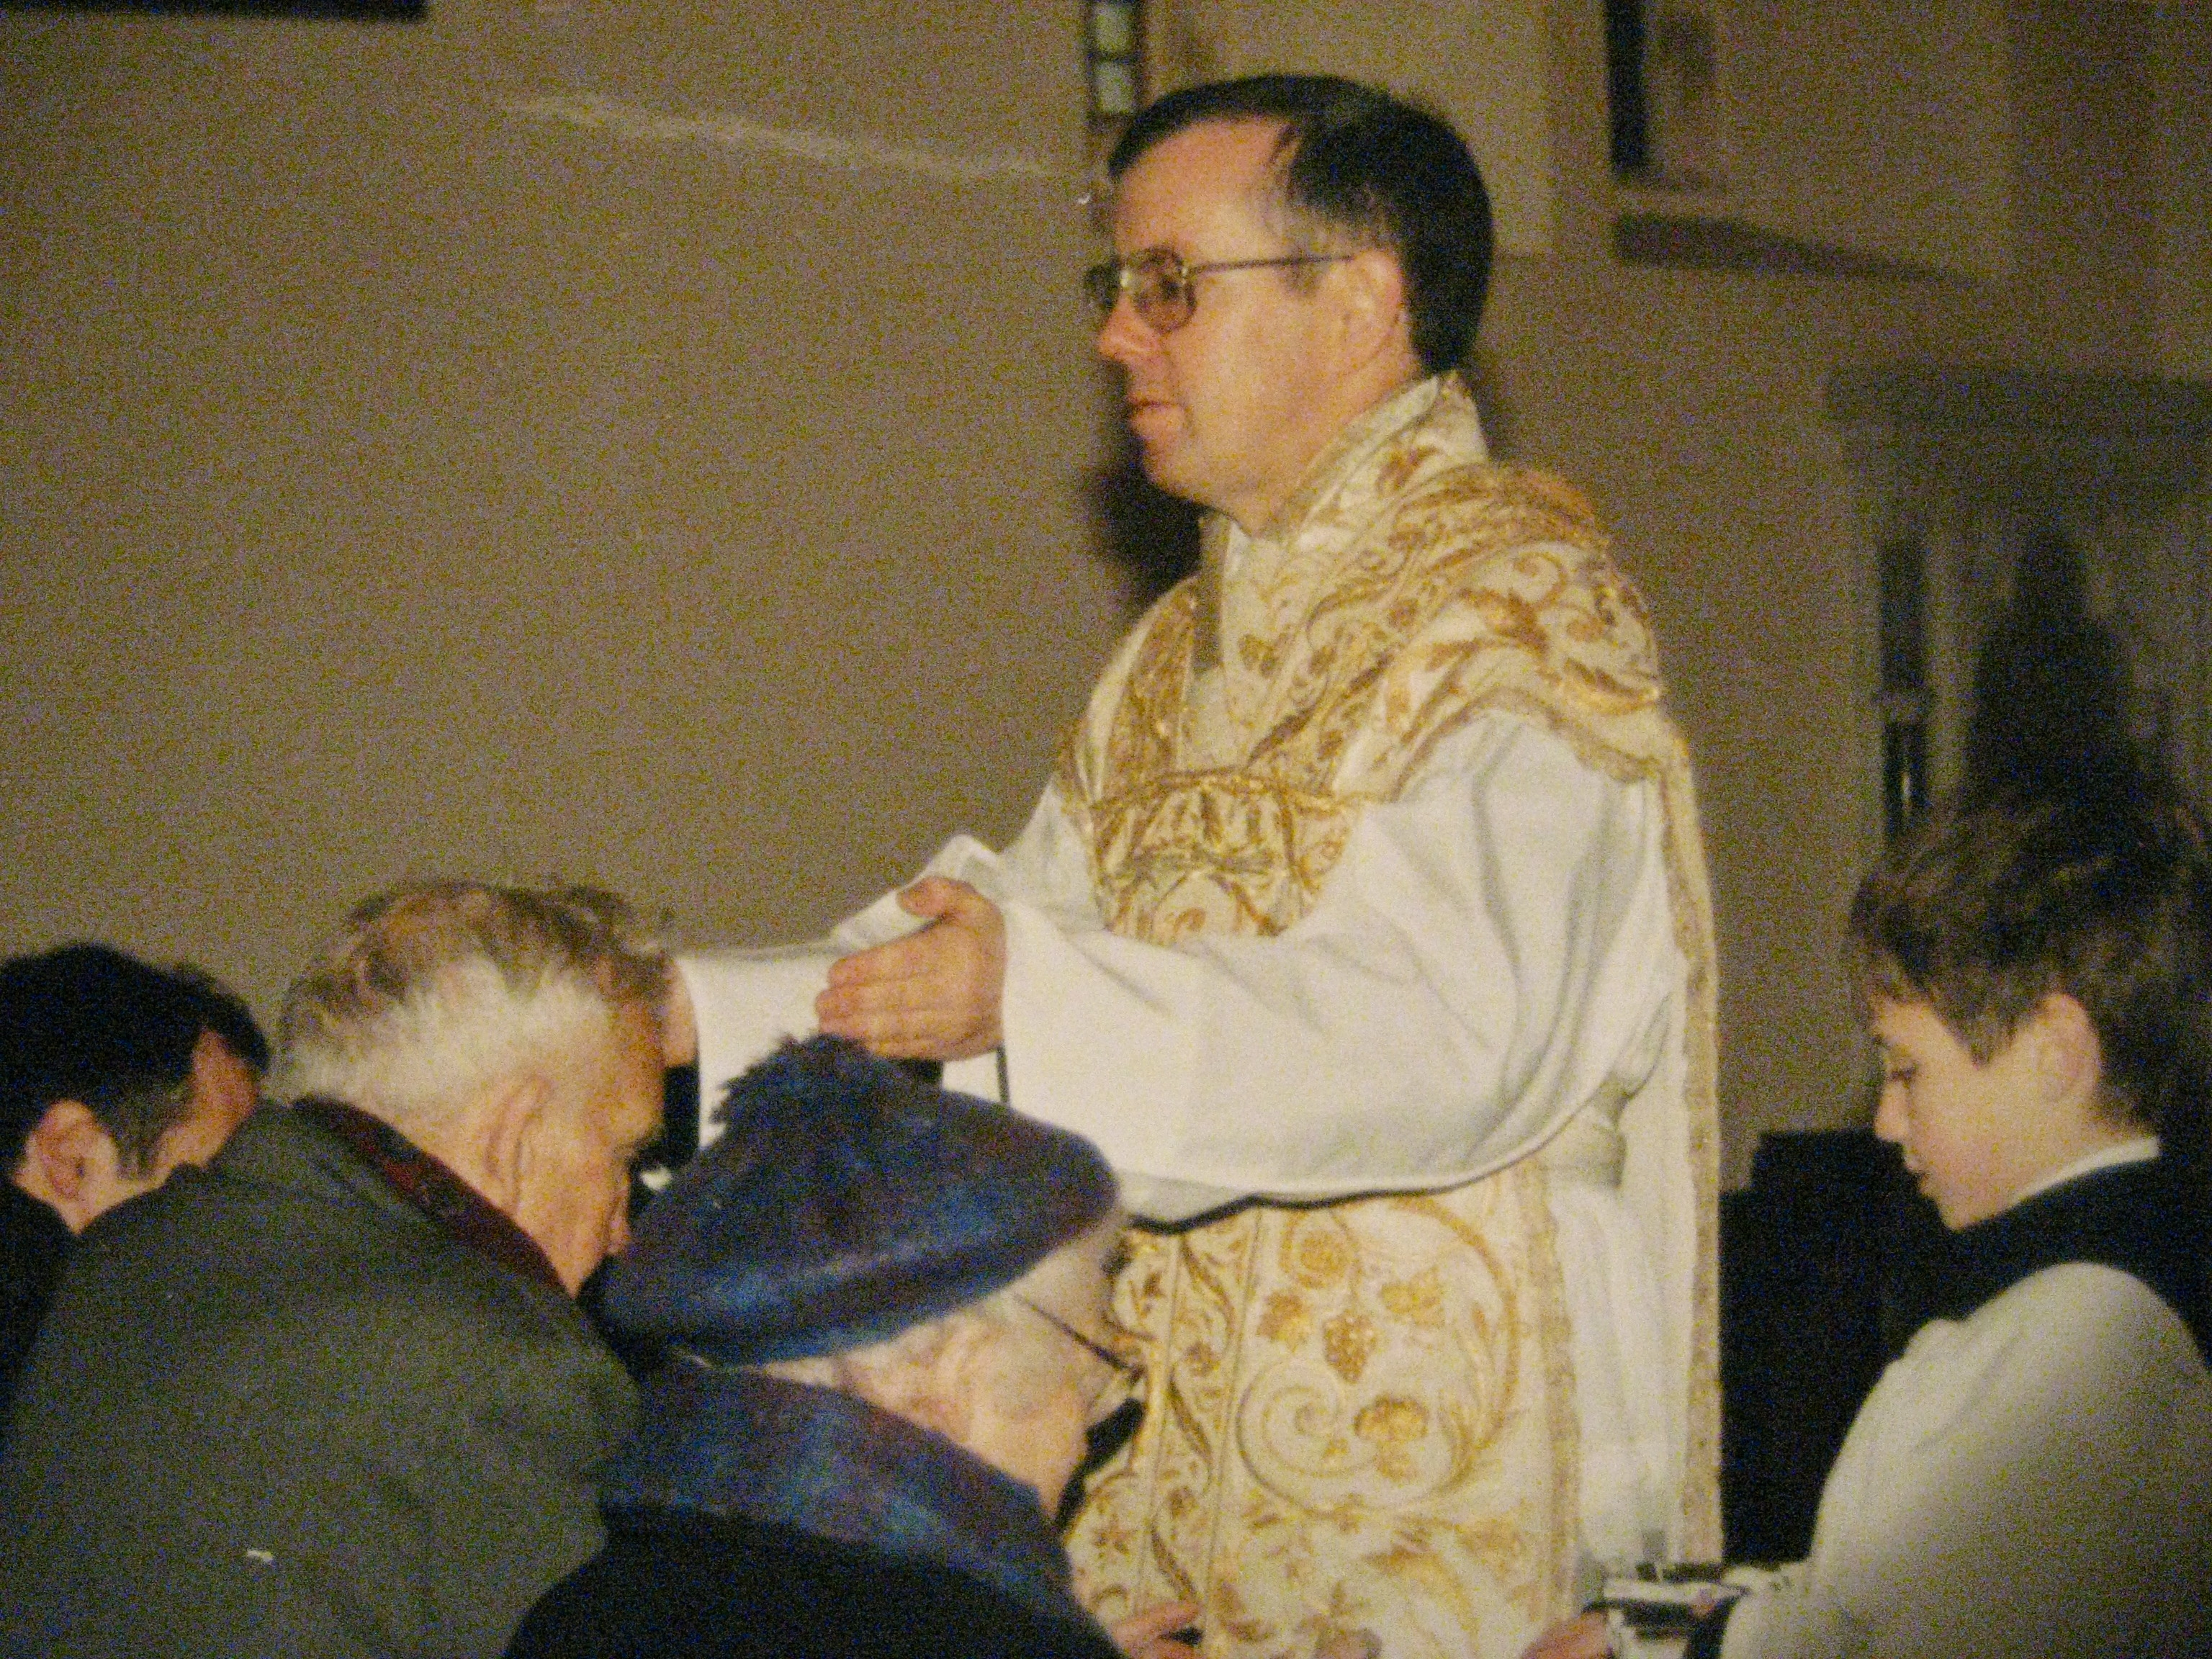 History Of The Sspx In Ireland District Of Ireland